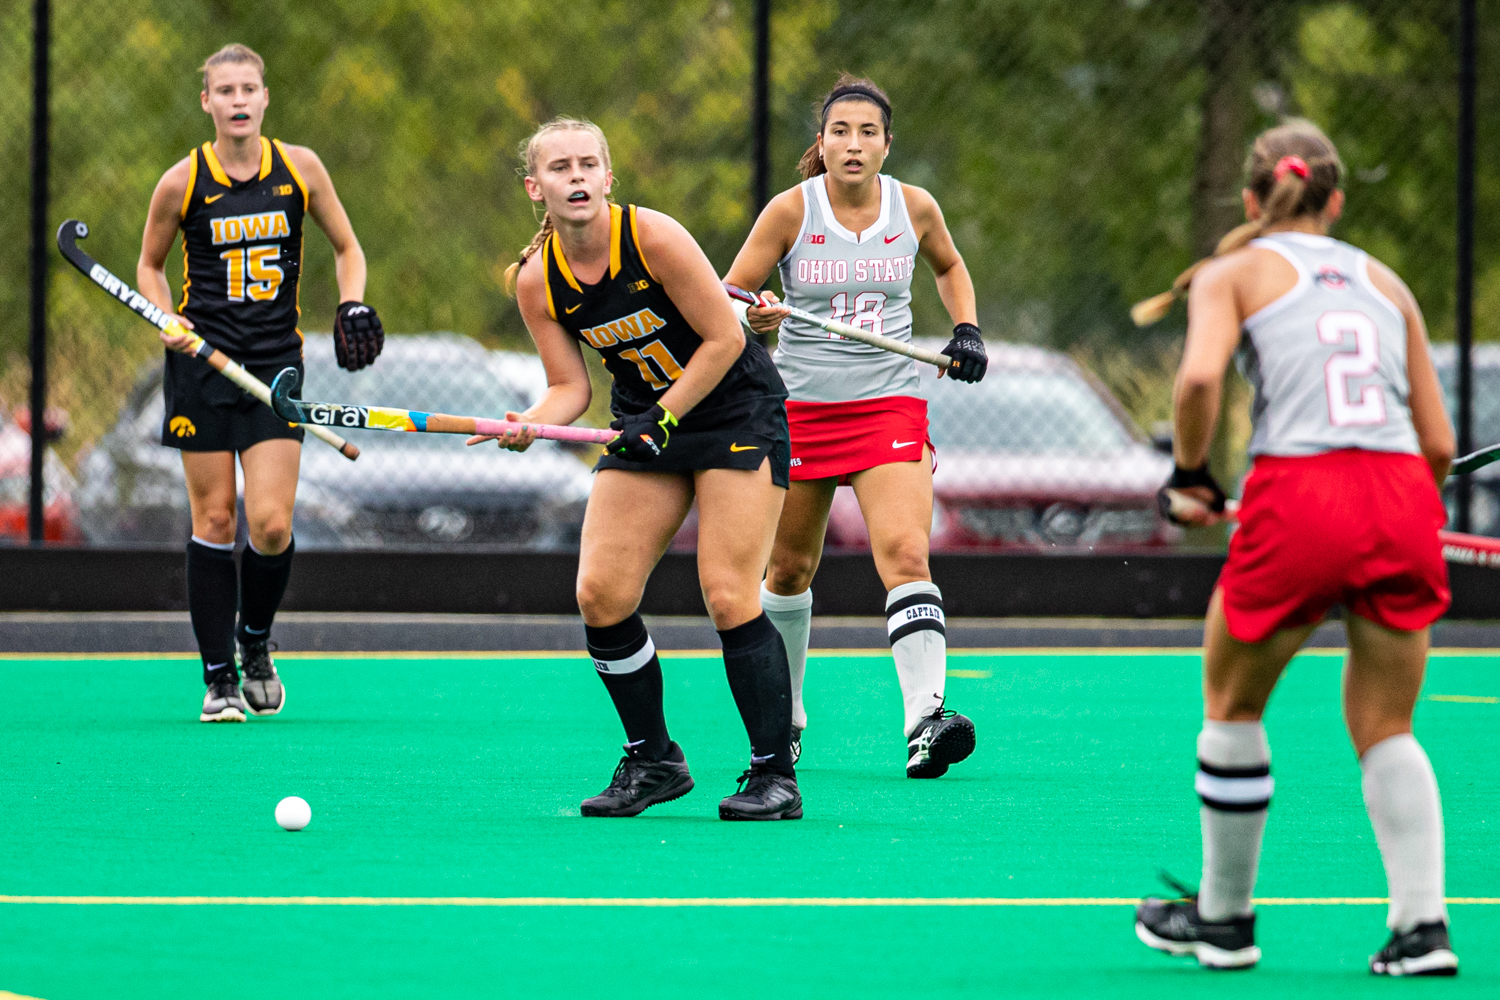 Iowa midfielder Katie Birch looks to pass during a field hockey match between Iowa and Ohio State on Friday, September 27, 2019. The Hawkeyes defeated the Buckeyes, 2-1.